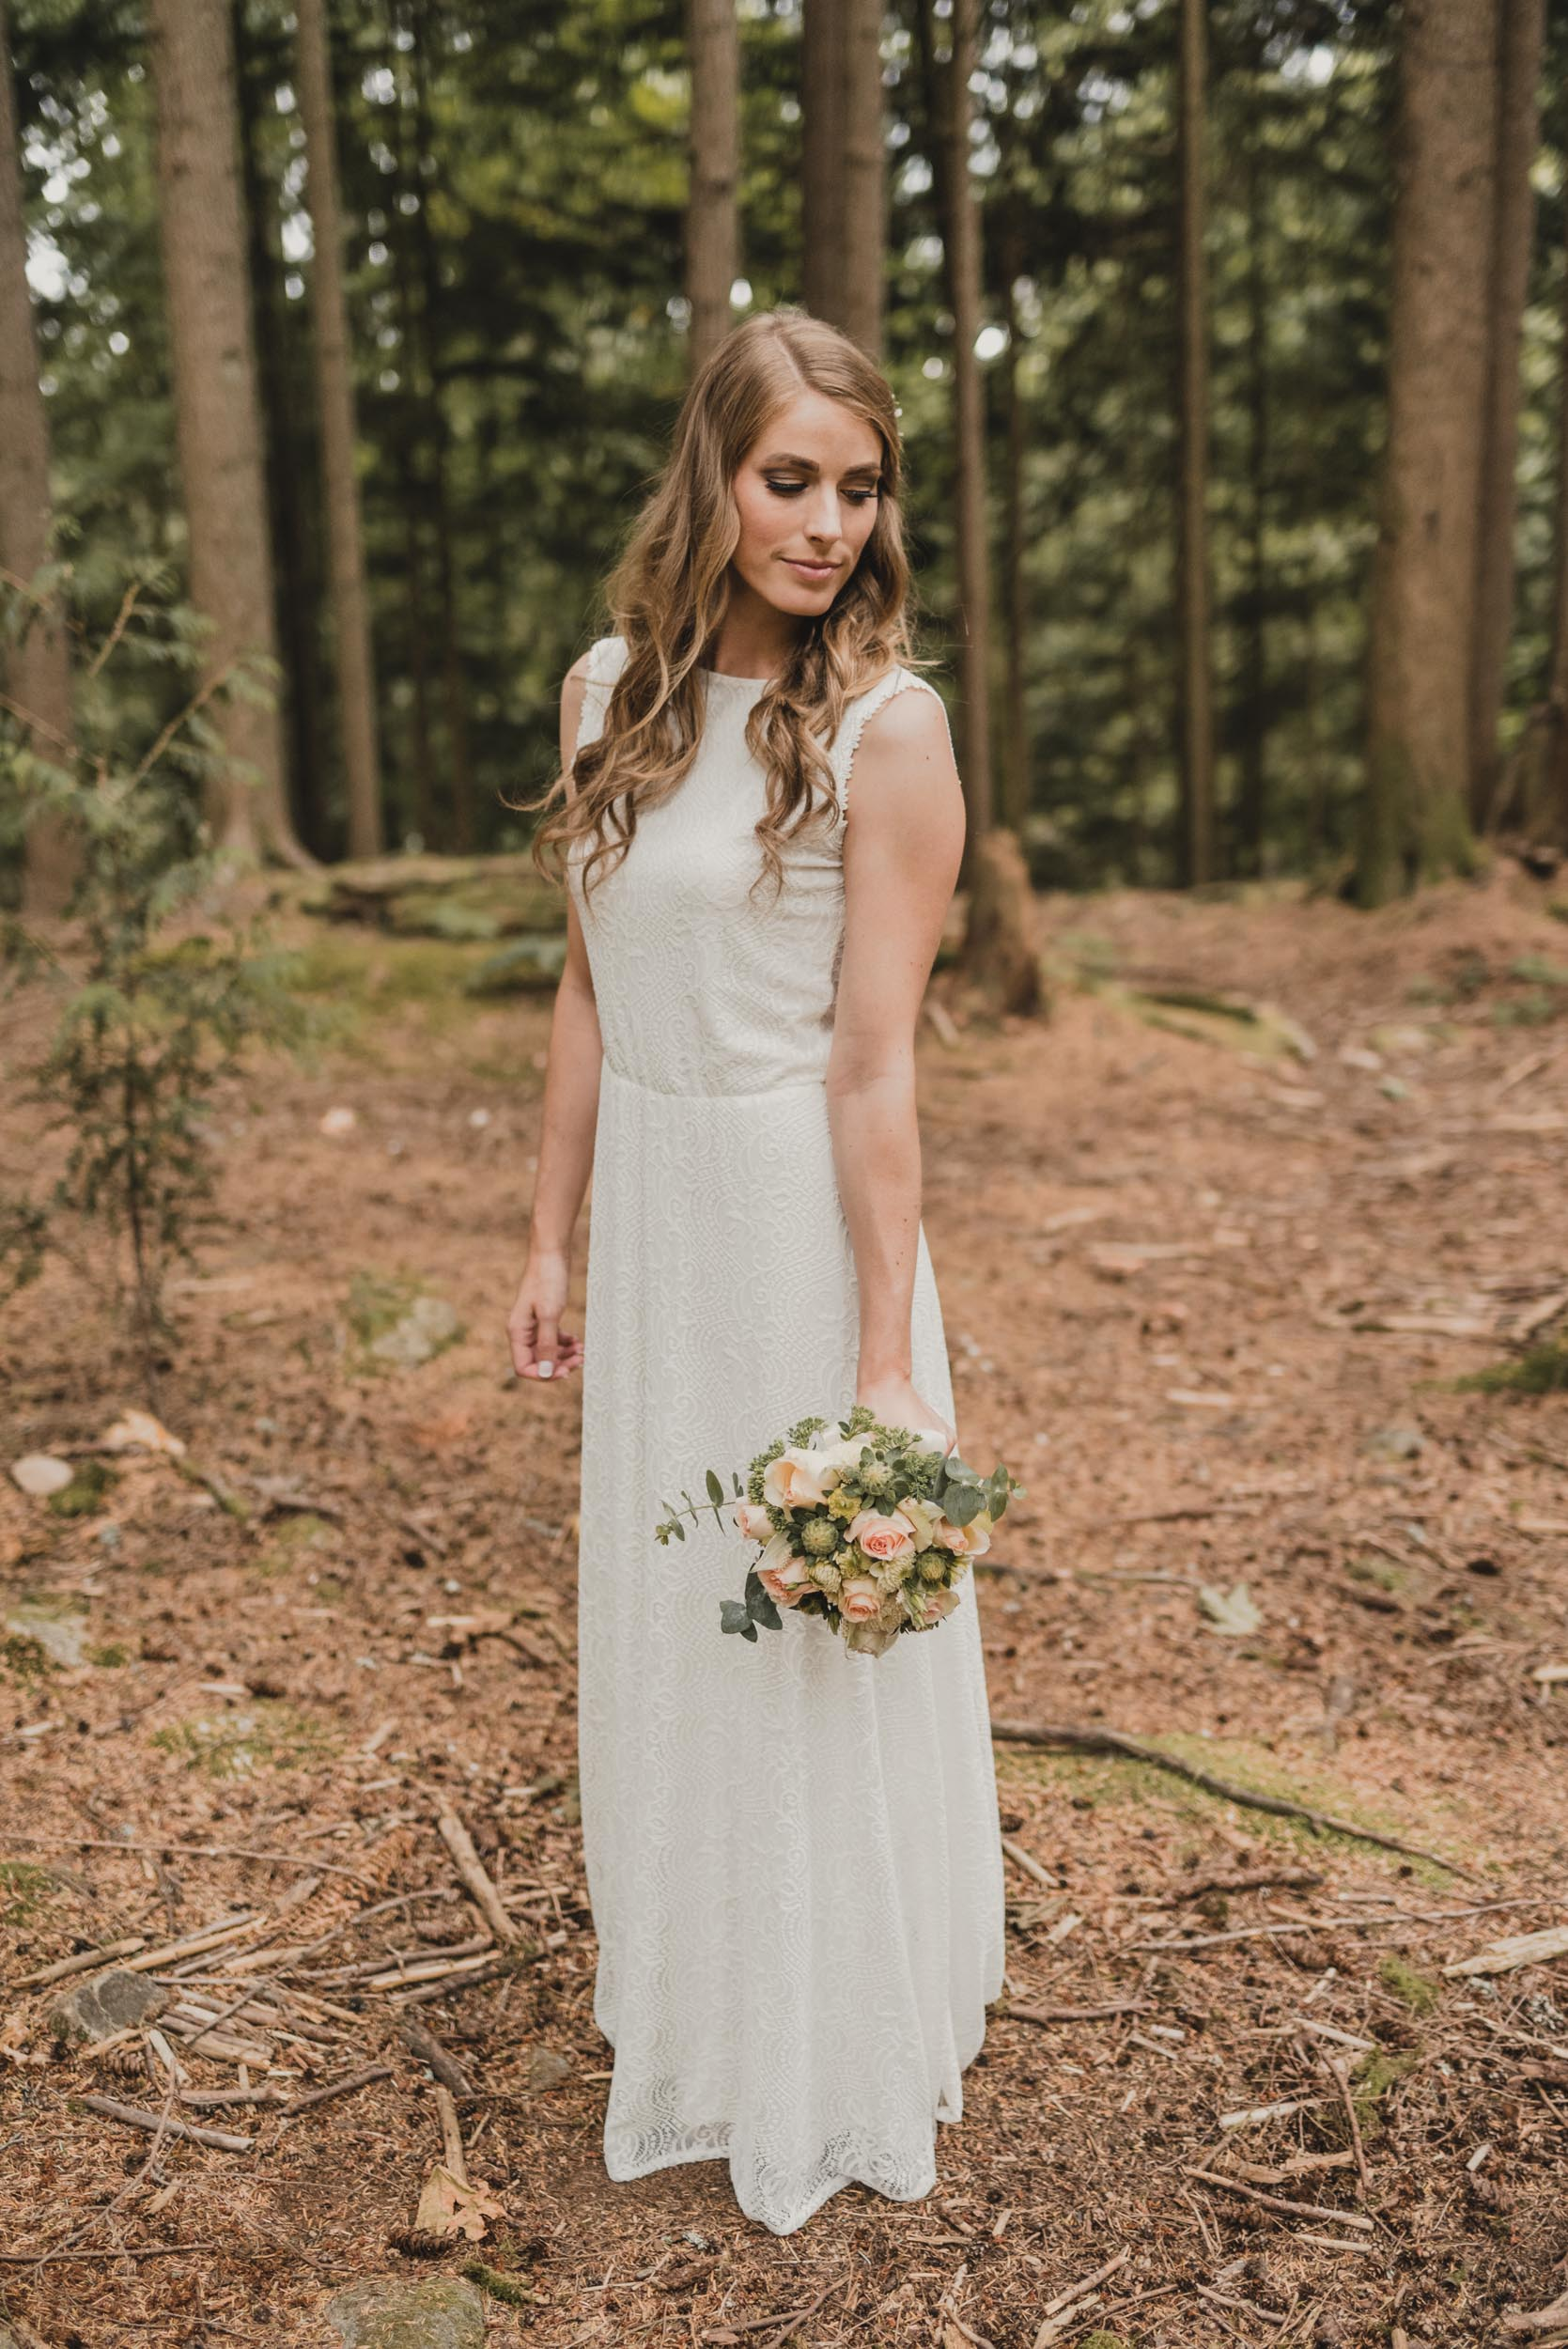 Bride portrait in forest